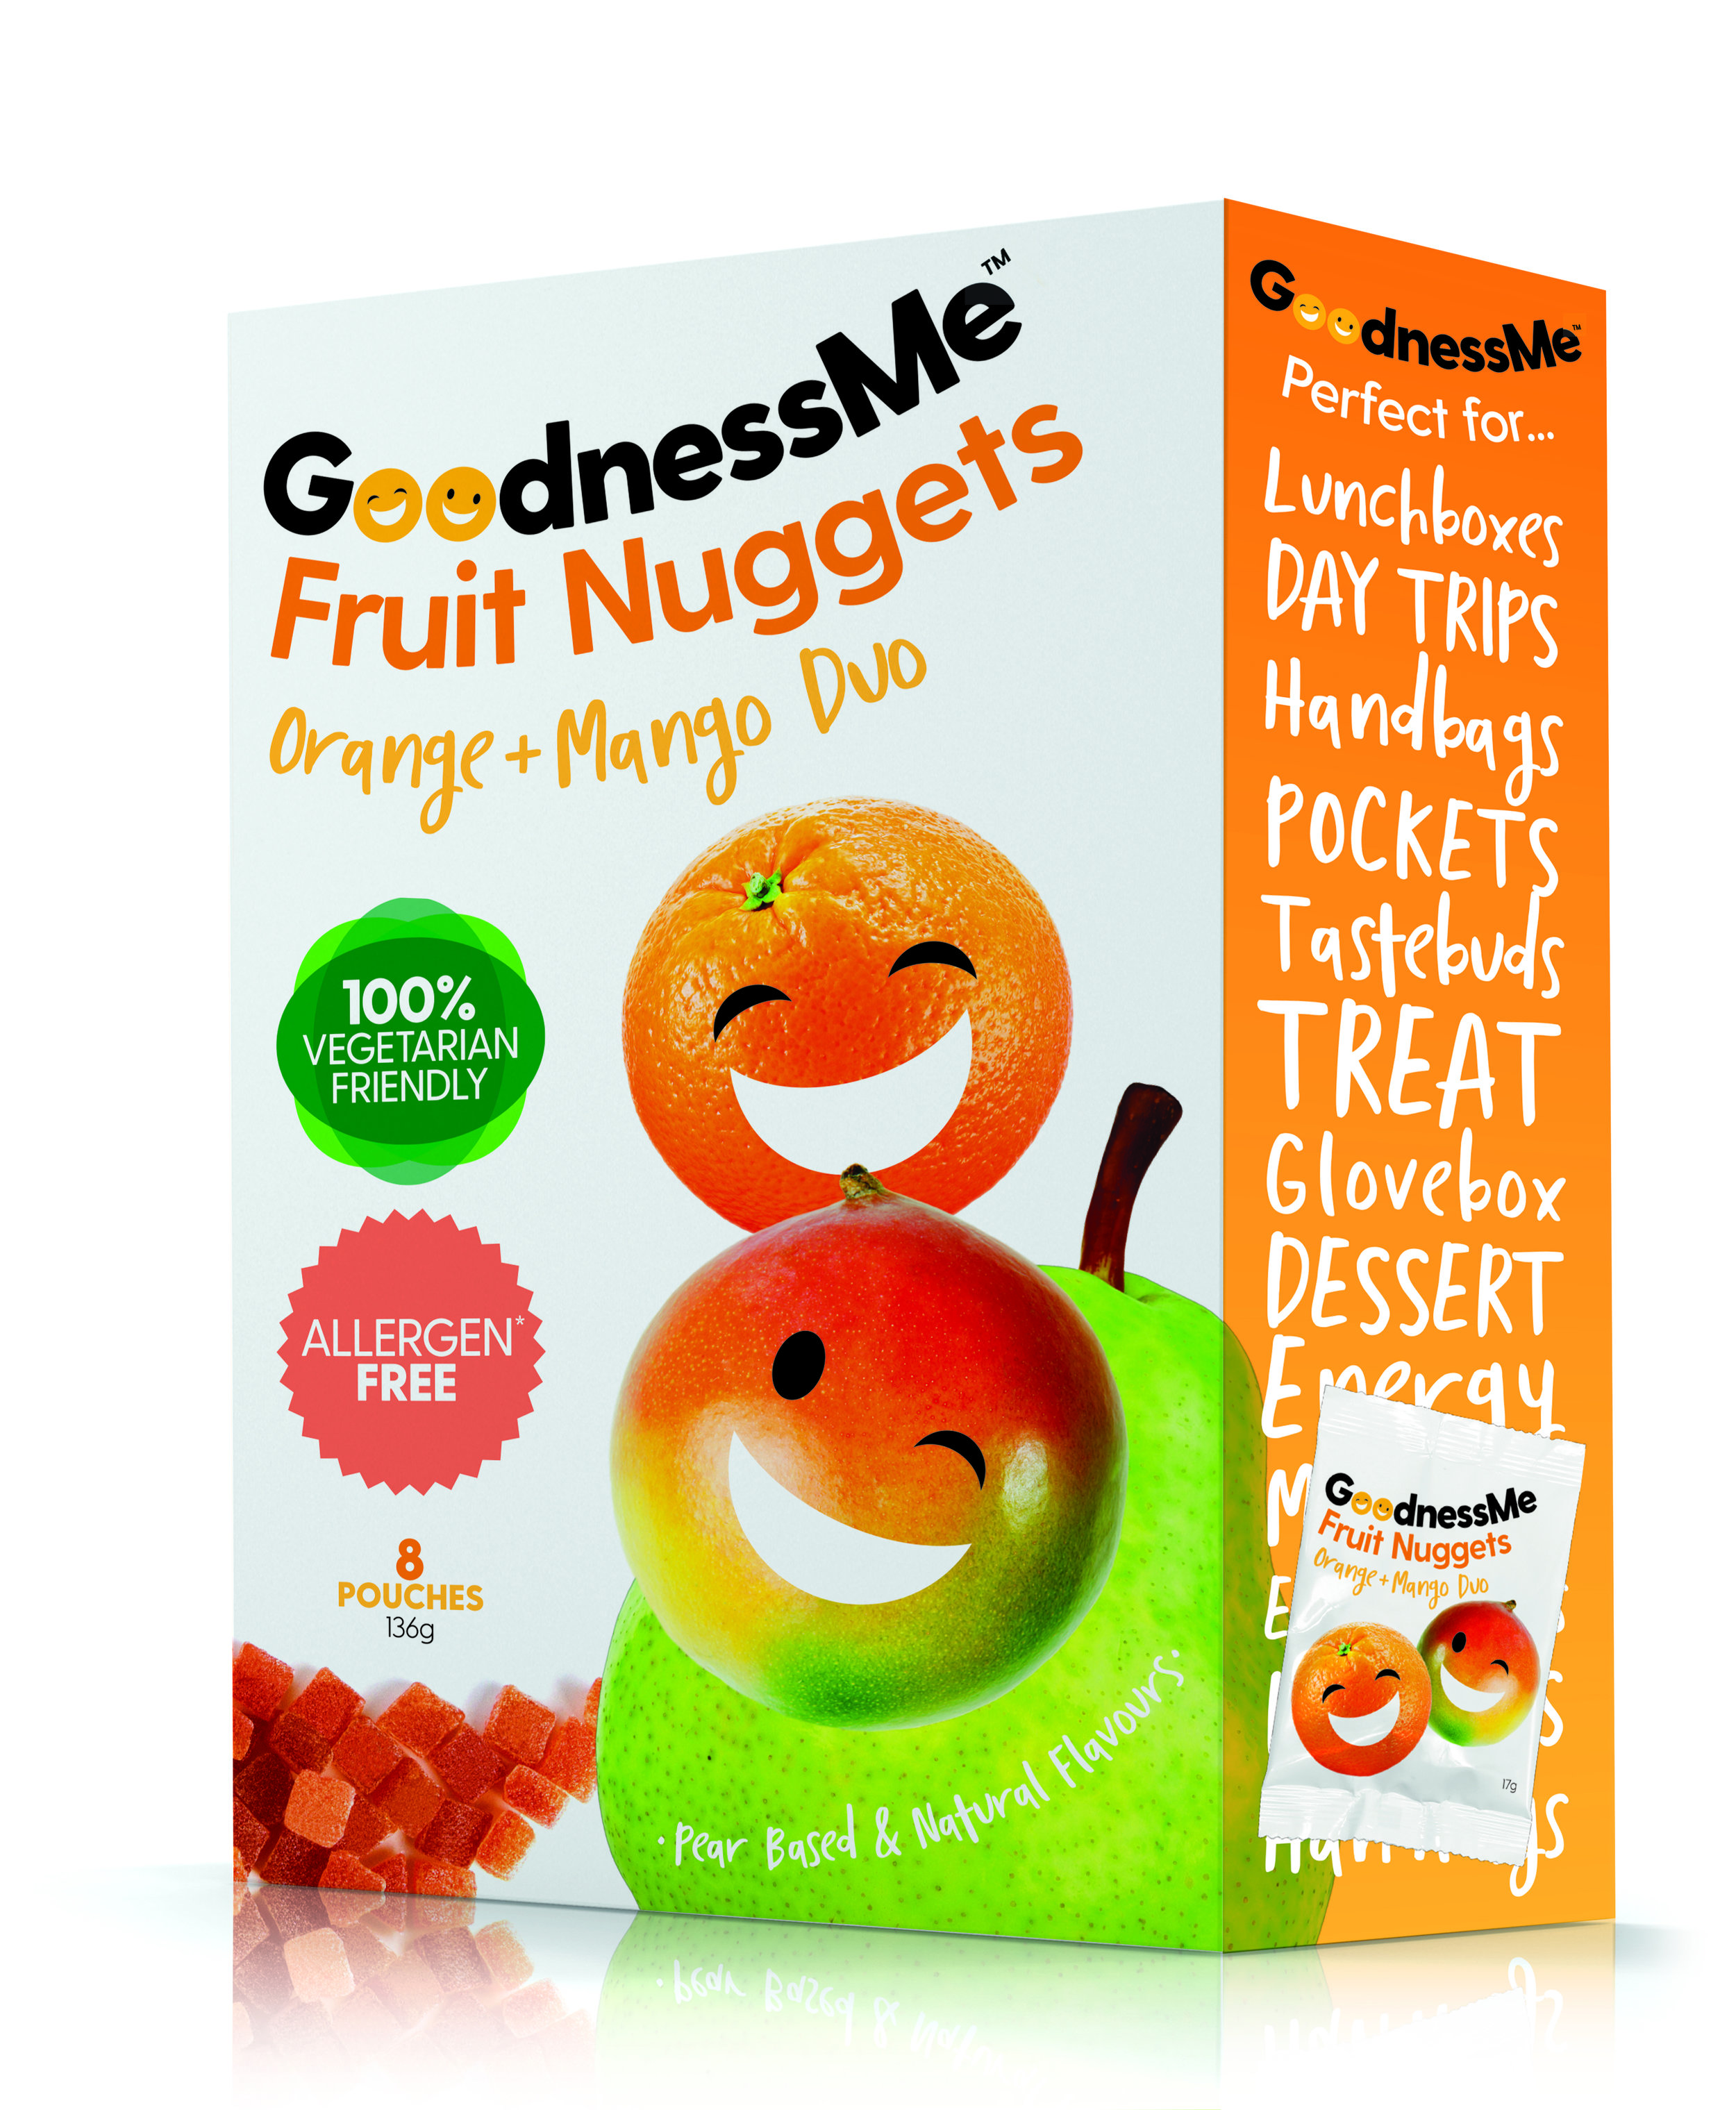 NZGF-GoodnessMe-Fruit-Nuggests-Pack-Orange-Mango.jpg